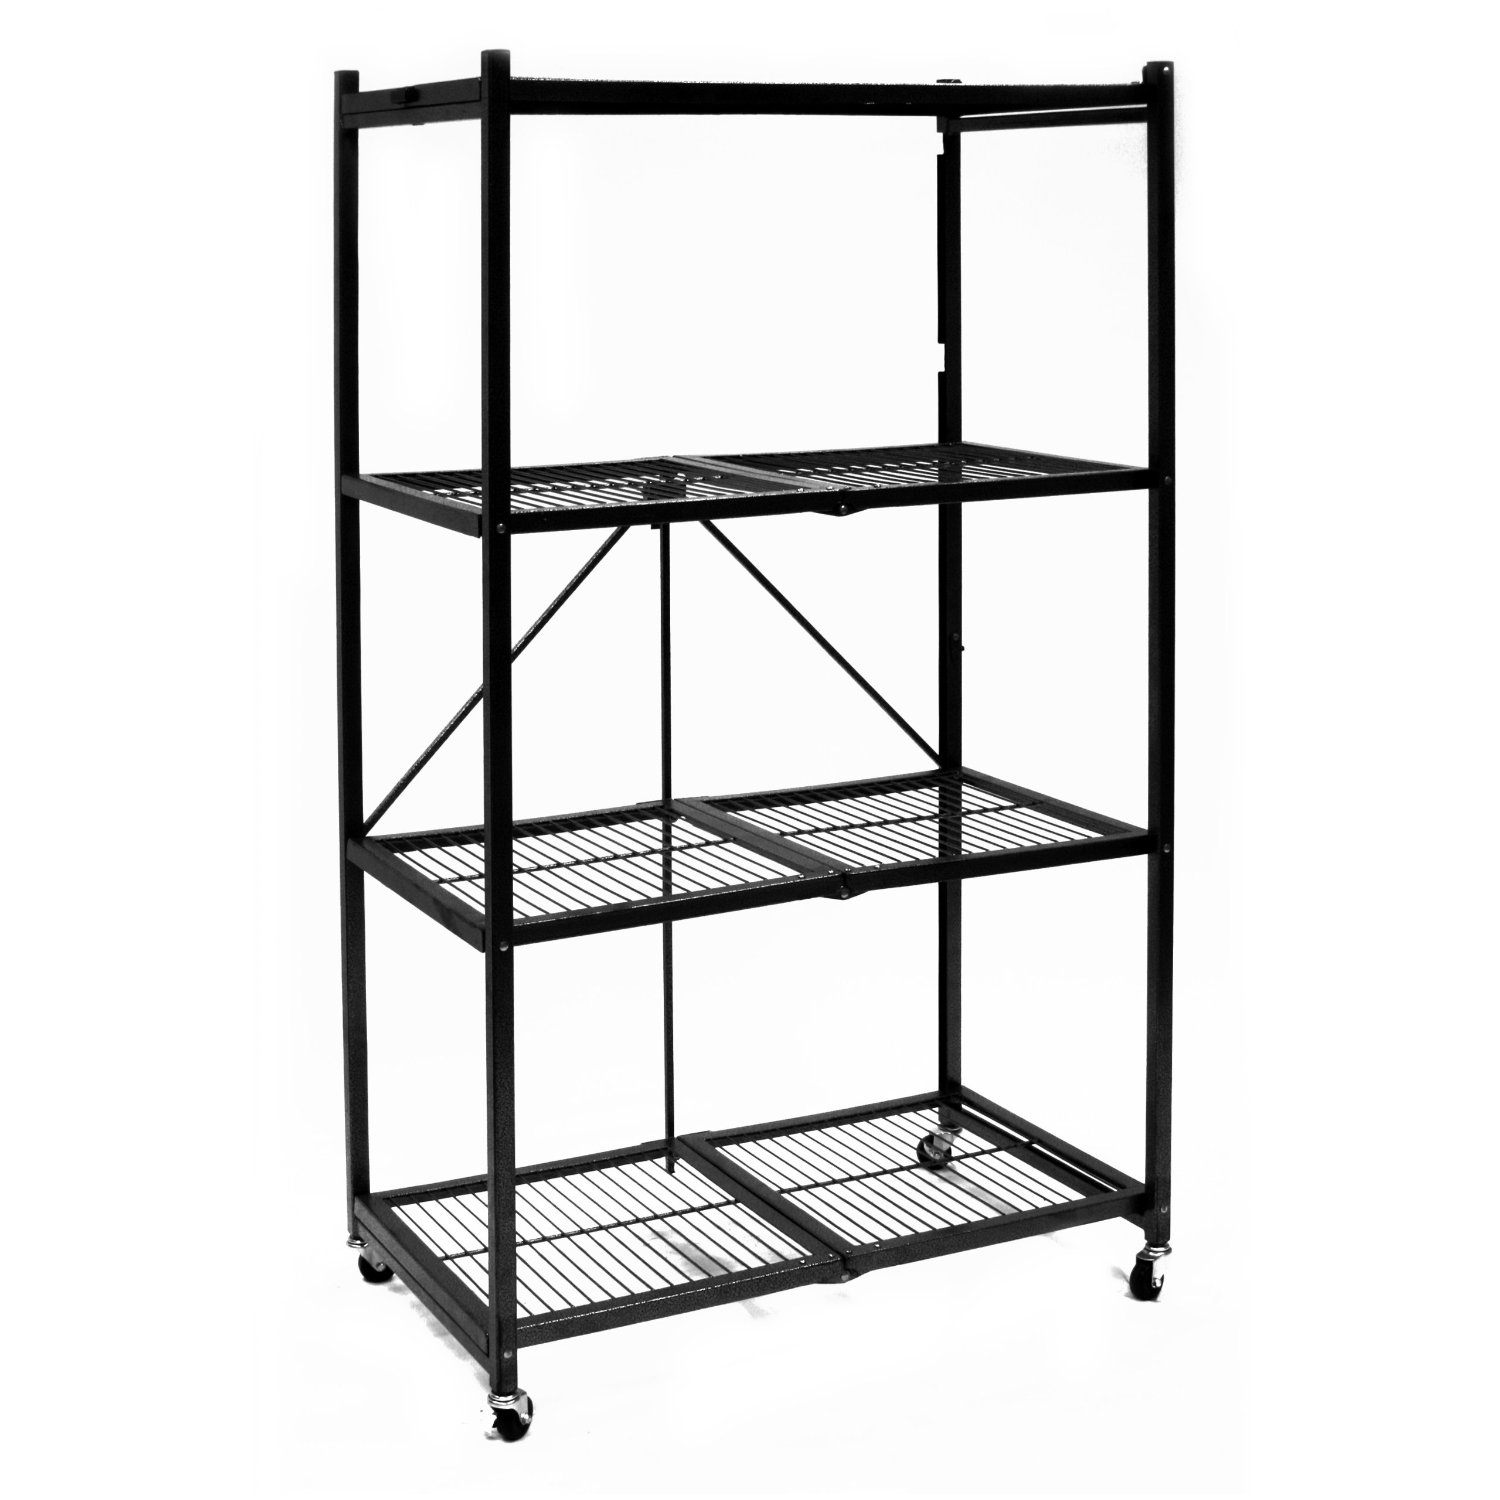 Top 10 Best Collapsible Storage Racks In 2018 Reviews